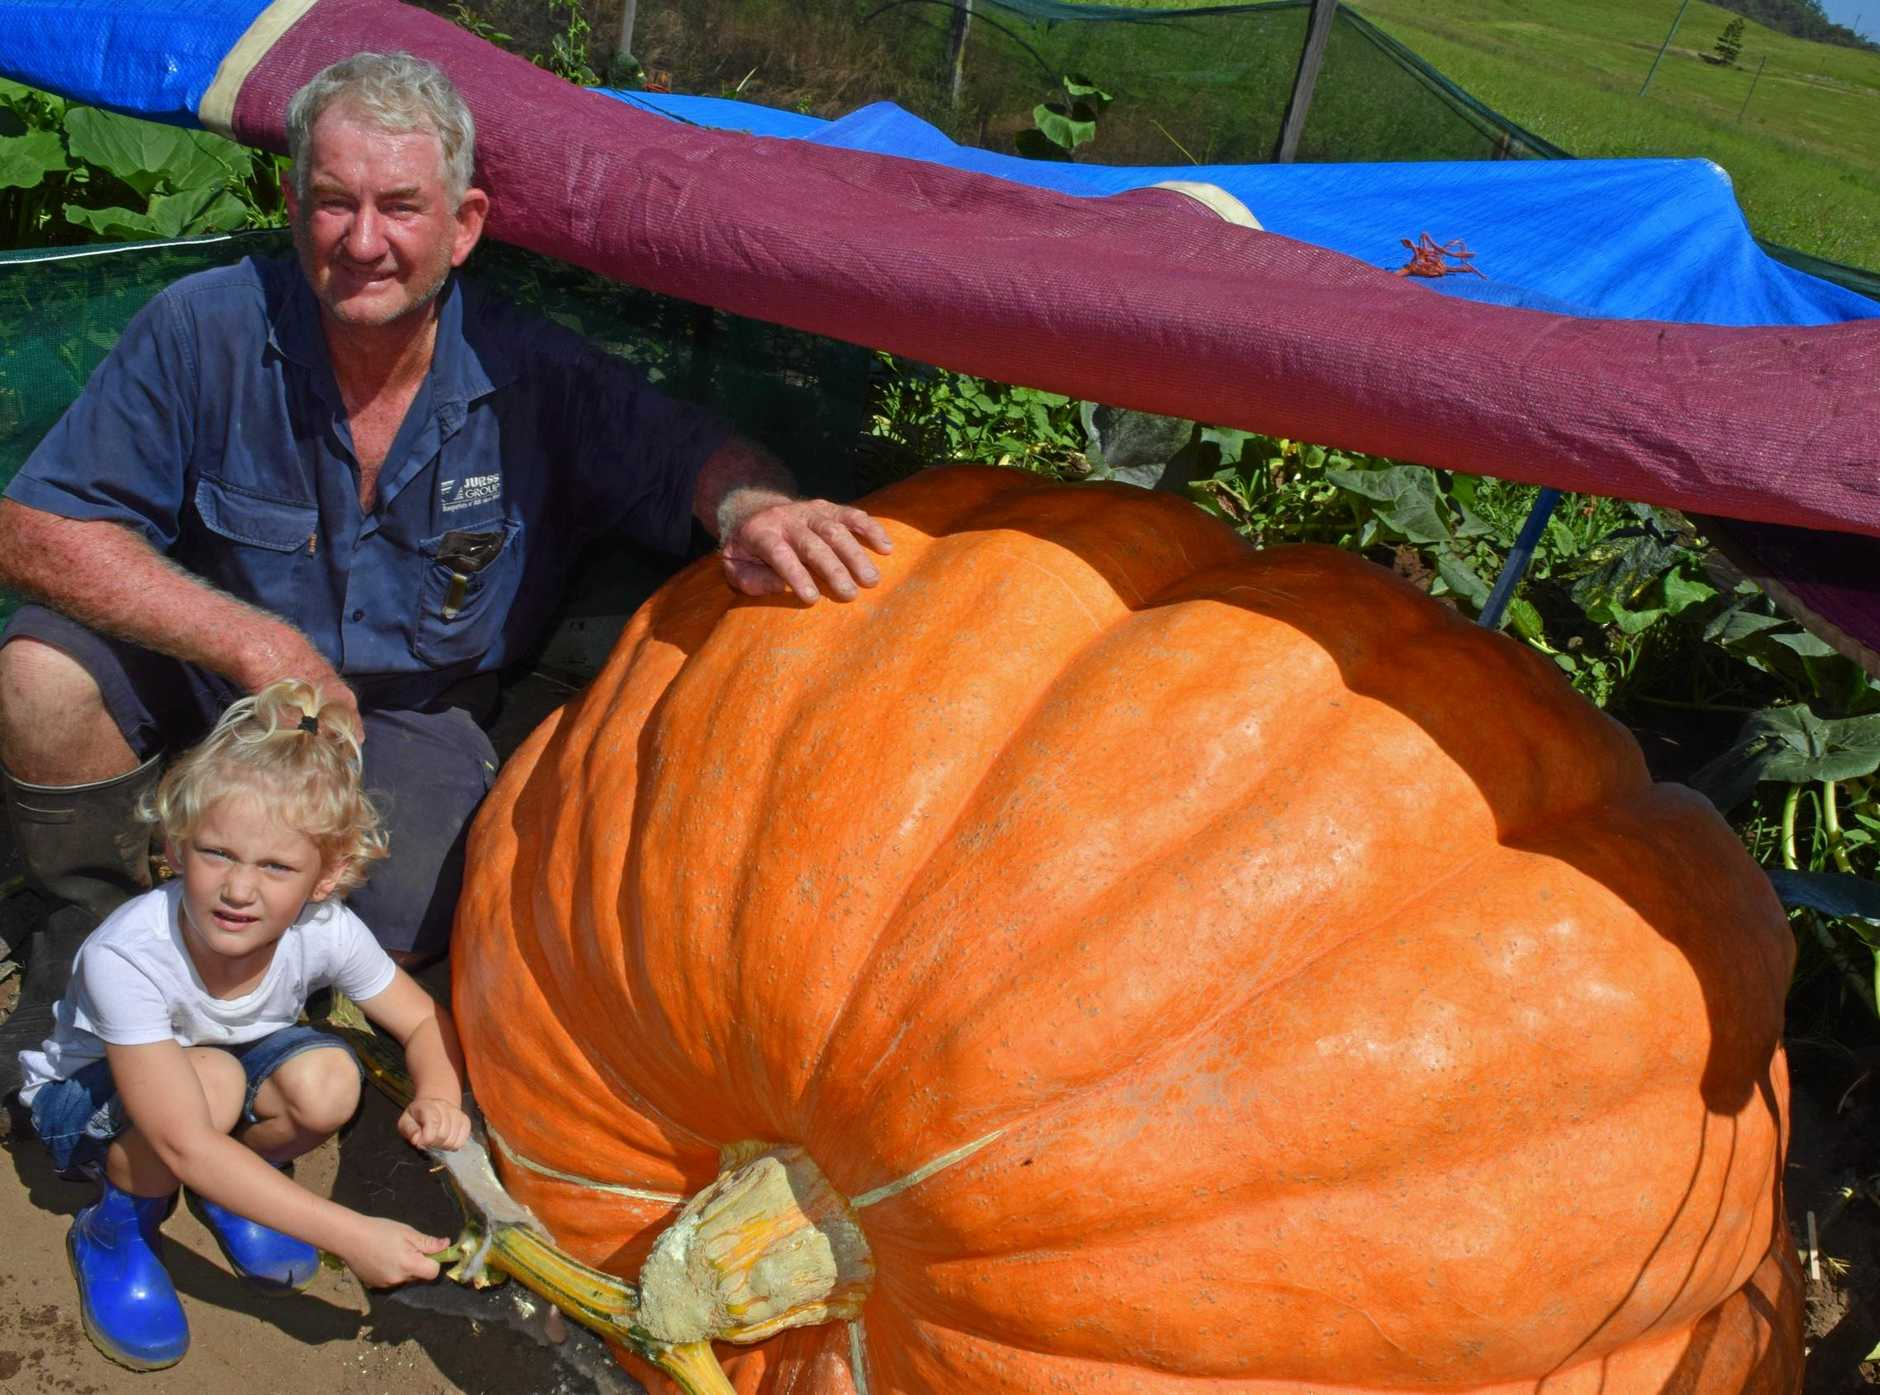 John Leadbeatter will enter his almost 600kg pumpkin into the Lismore competition on January 20. From left: John Leadbeatter and his granddaughter Serena Allen.